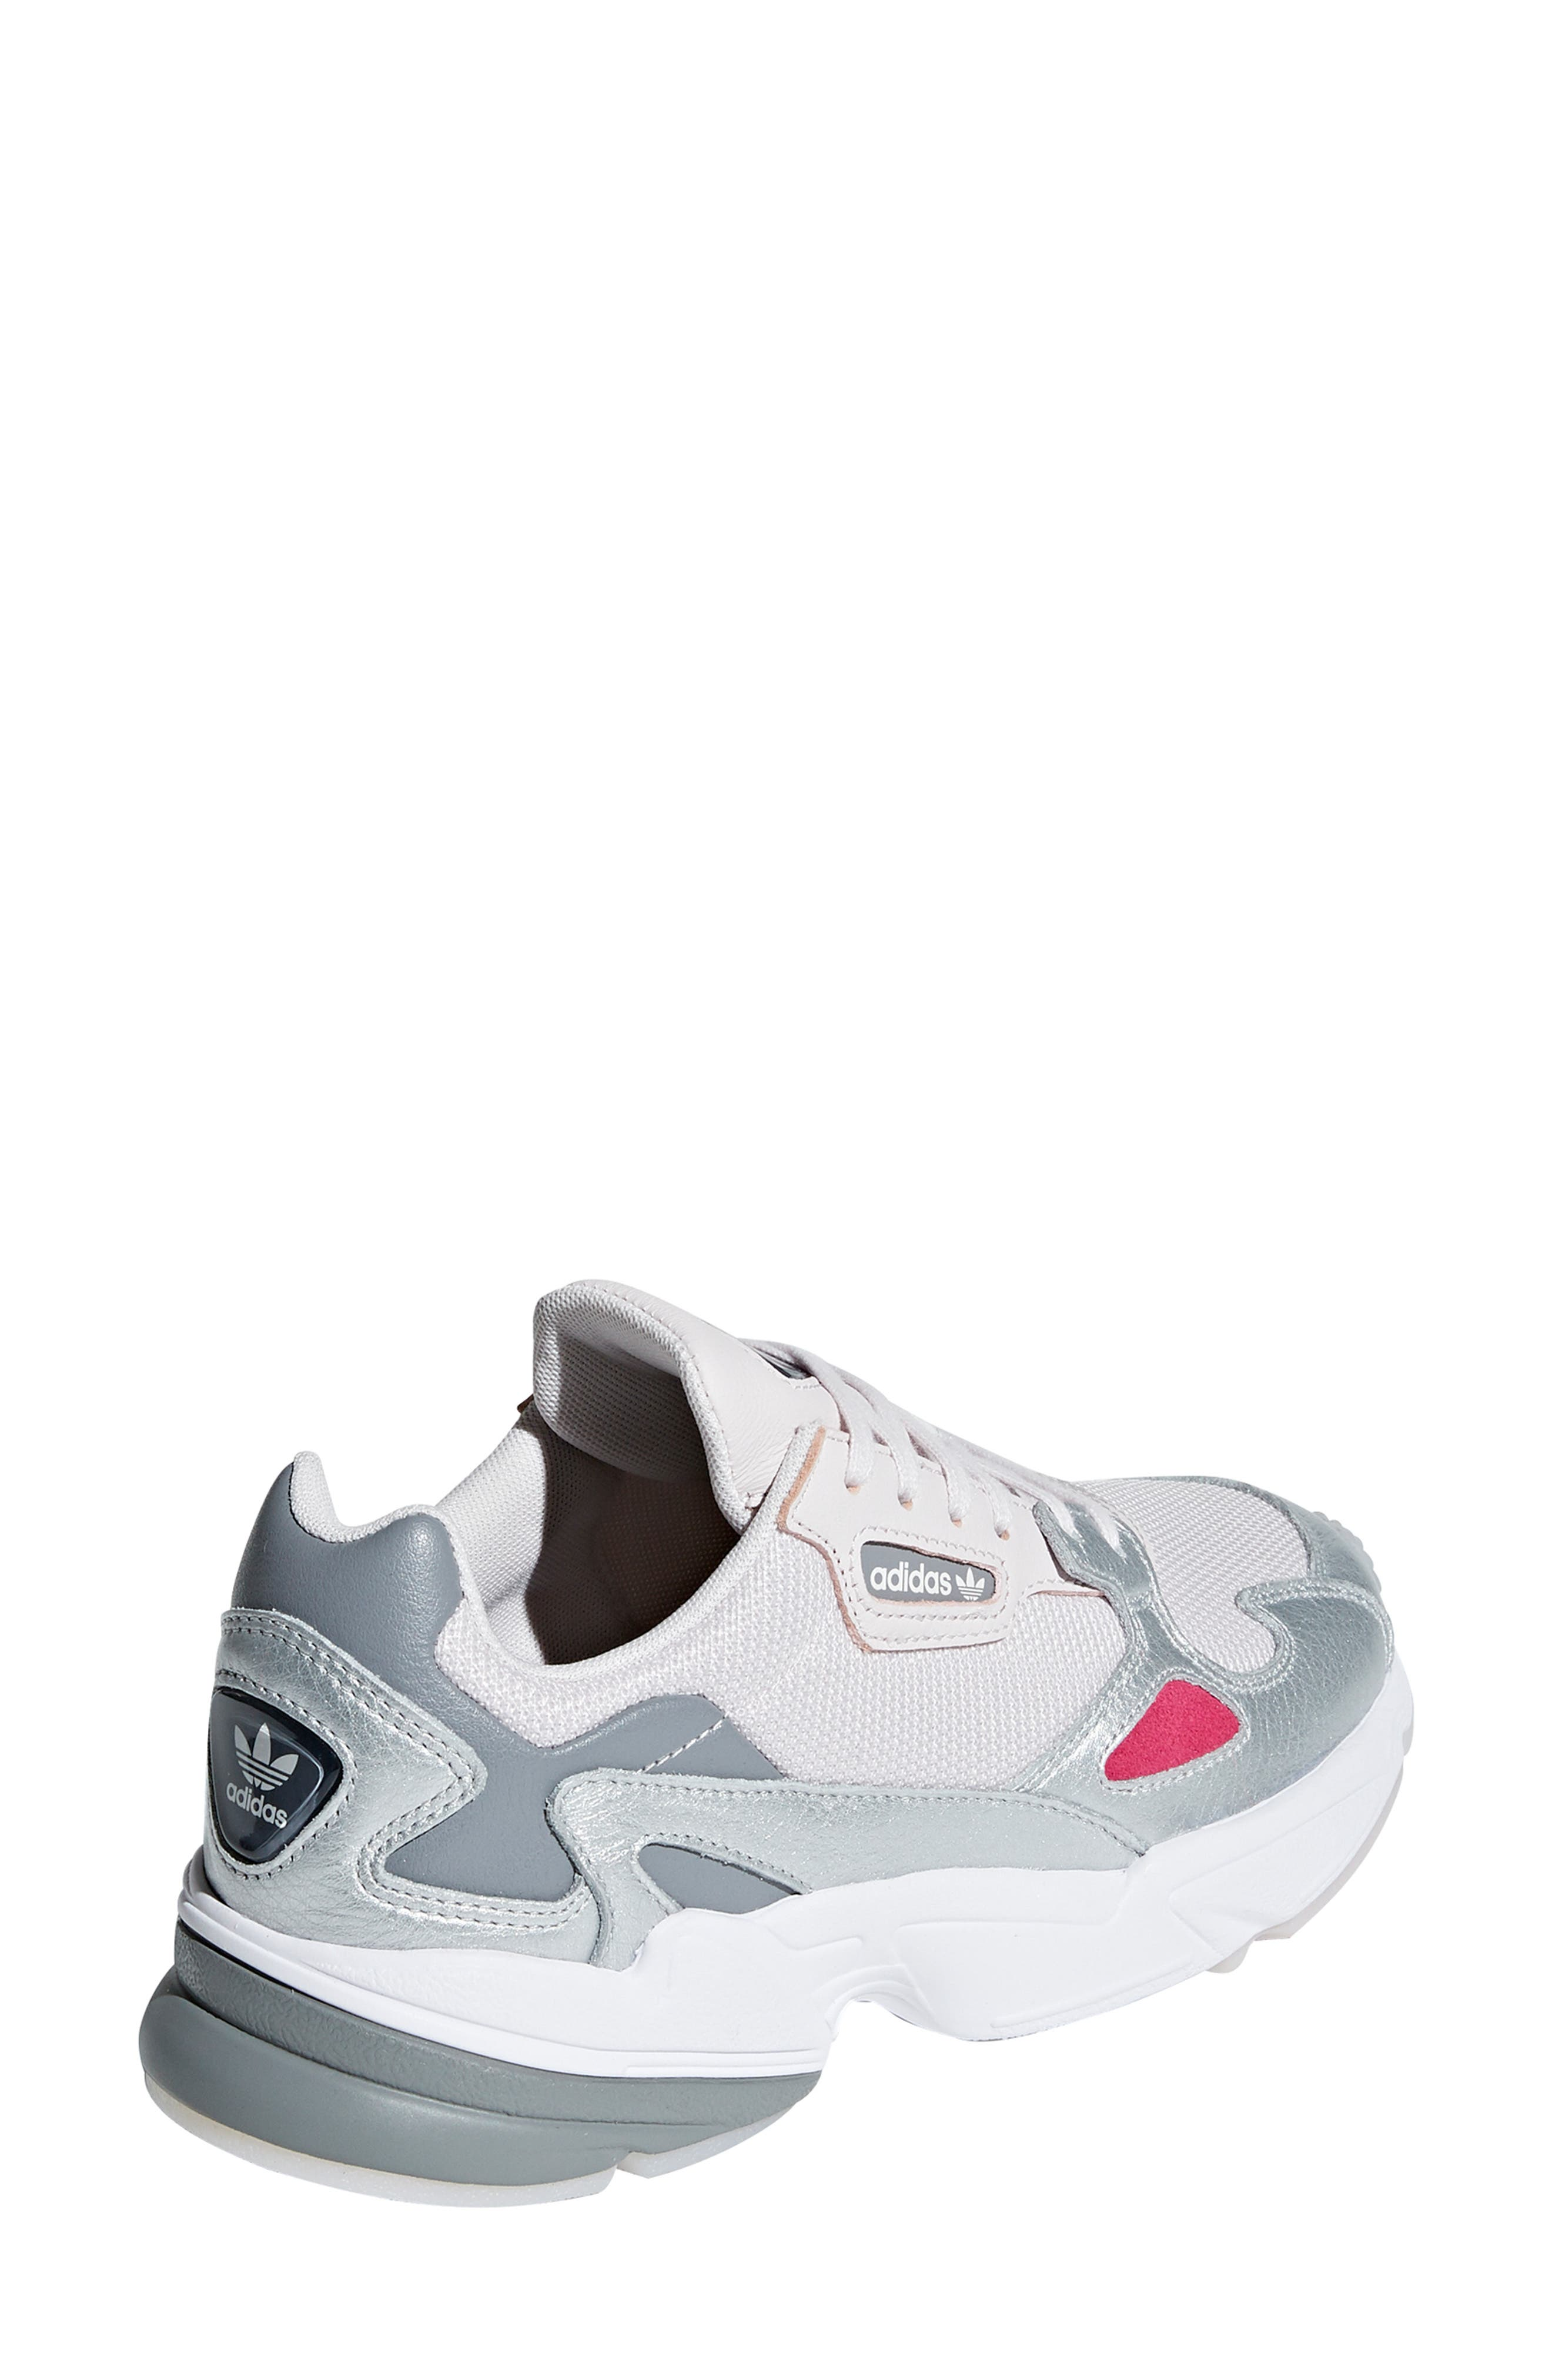 Falcon Sneaker,                             Alternate thumbnail 2, color,                             ORCHID TINT/ SILVER